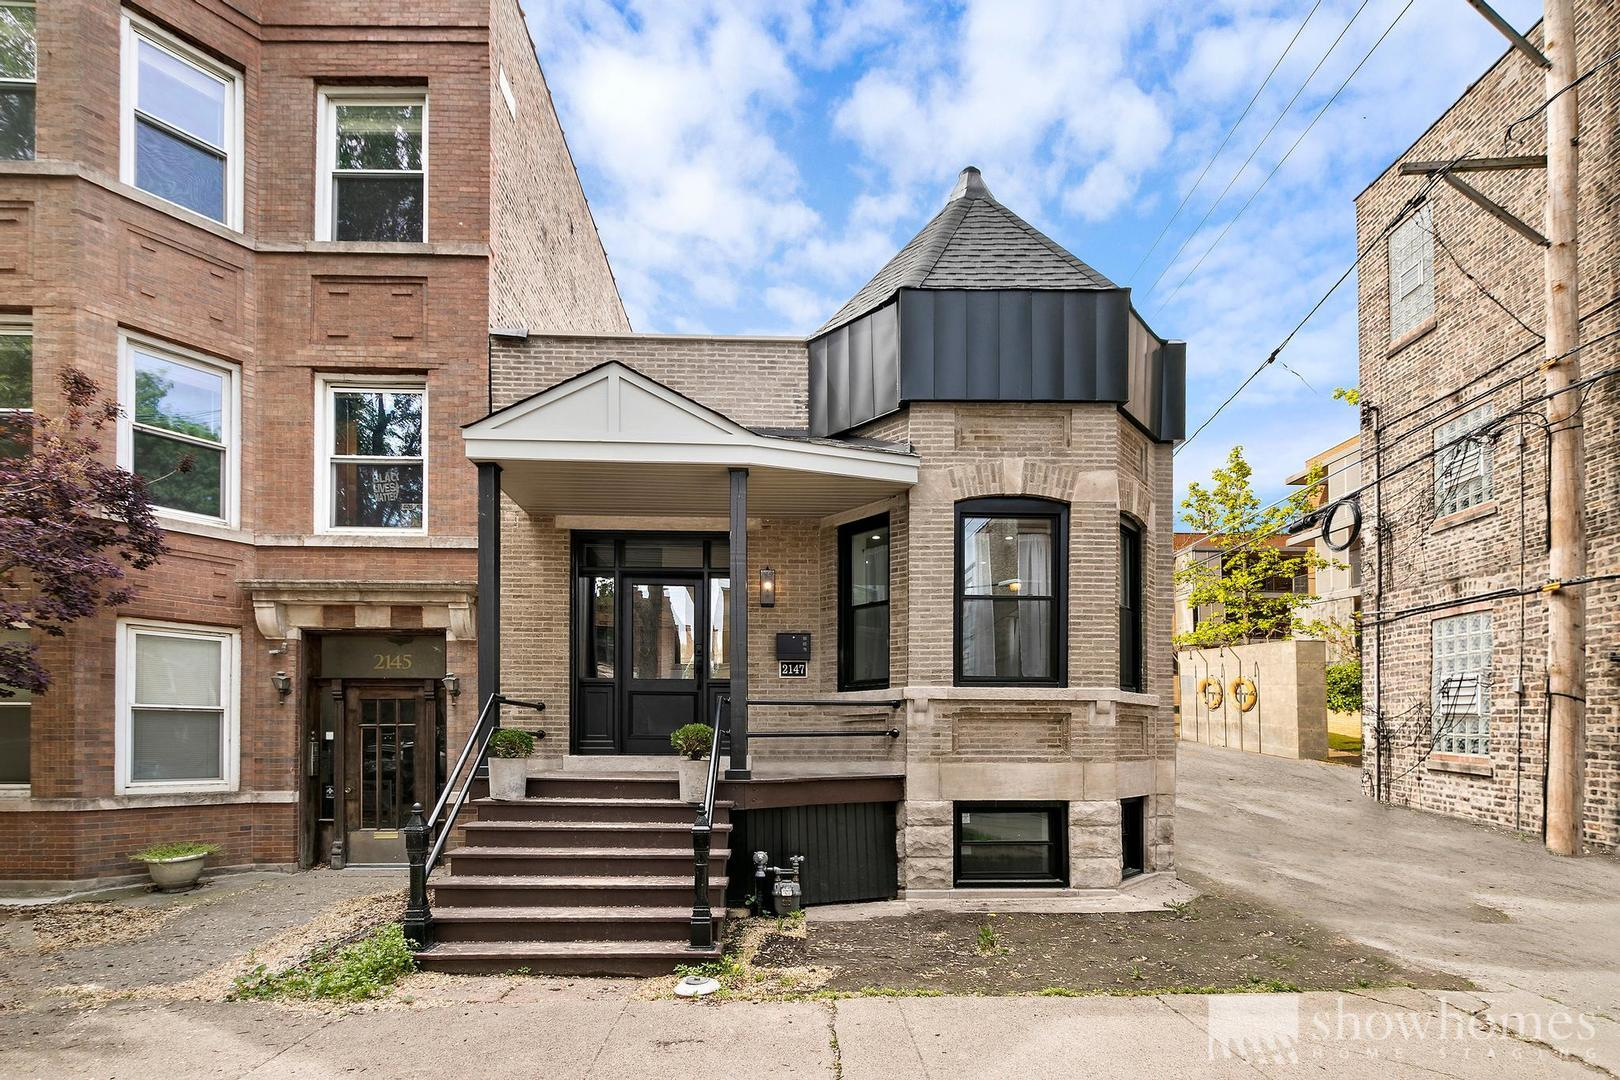 2147 W Thomas Street, Chicago, IL 60622 - #: 10968385